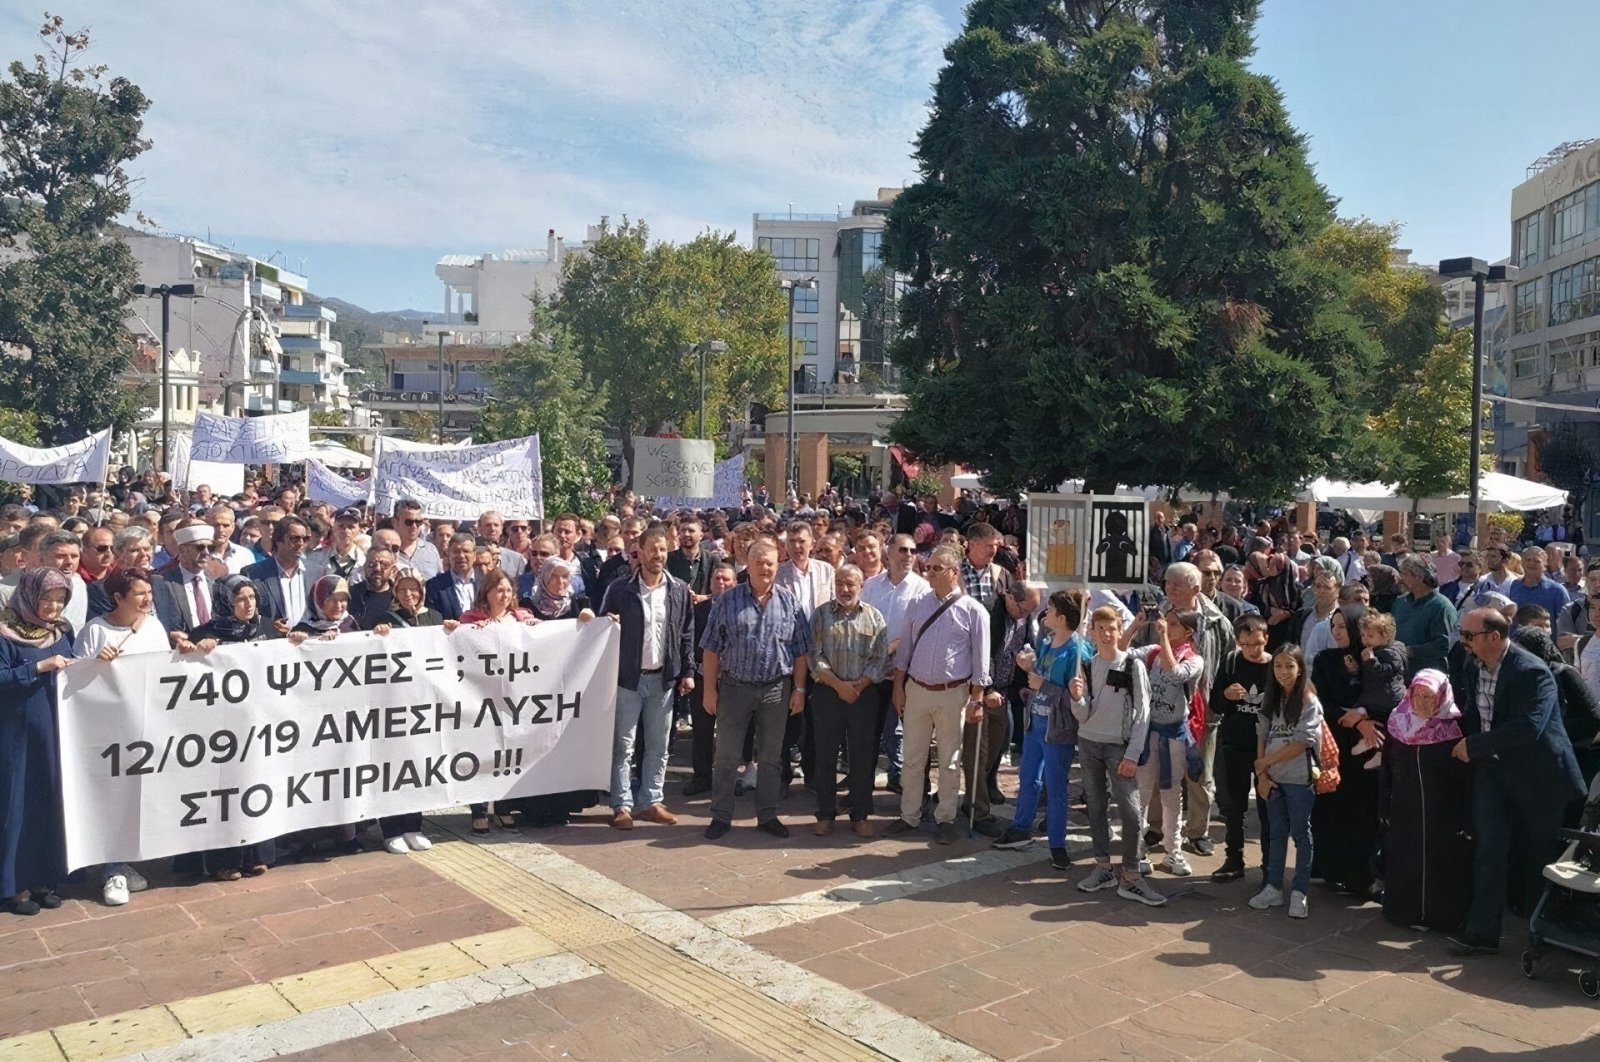 Turks in Western Thrace's Iskeçe (Xanthi) province protest the Greek government's assimilation policies in education, Iskeçe (Xanthi), Western Thrace, Greece, Sept. 24, 2019. (Sabah Photo)